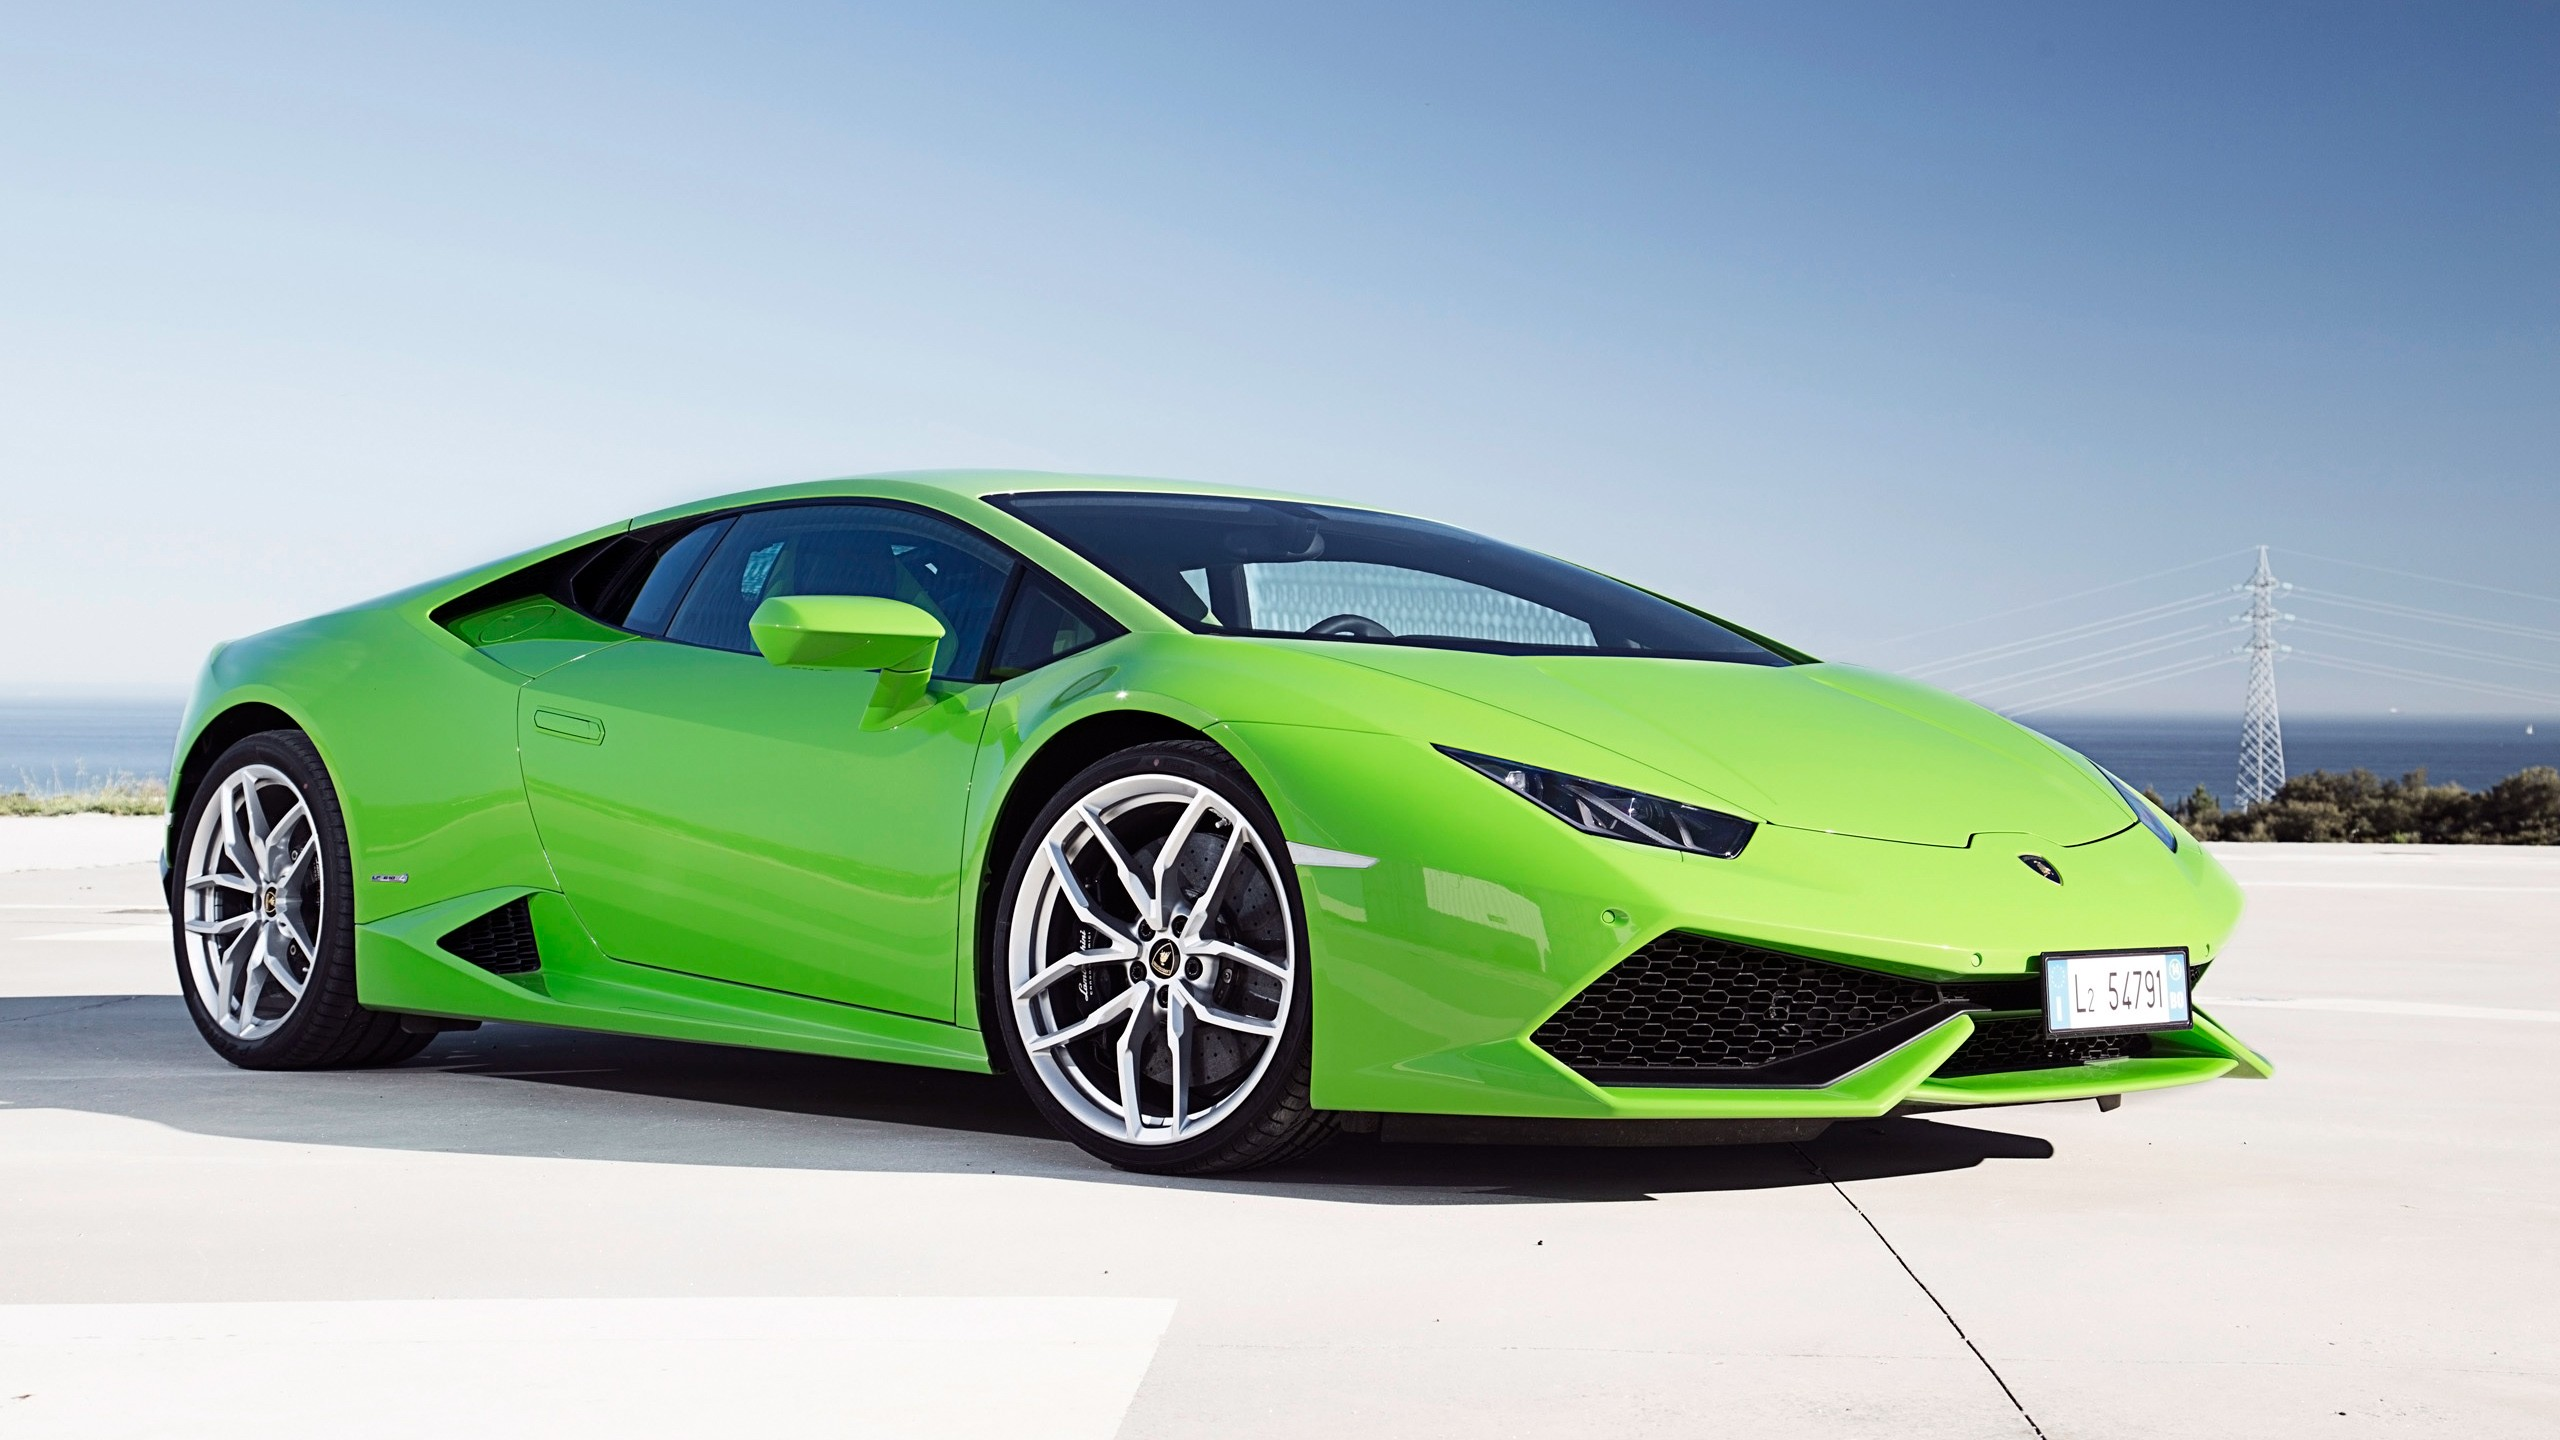 2014 lamborghini huracan lp610 4 green wallpaper hd car wallpapers id 4672. Black Bedroom Furniture Sets. Home Design Ideas